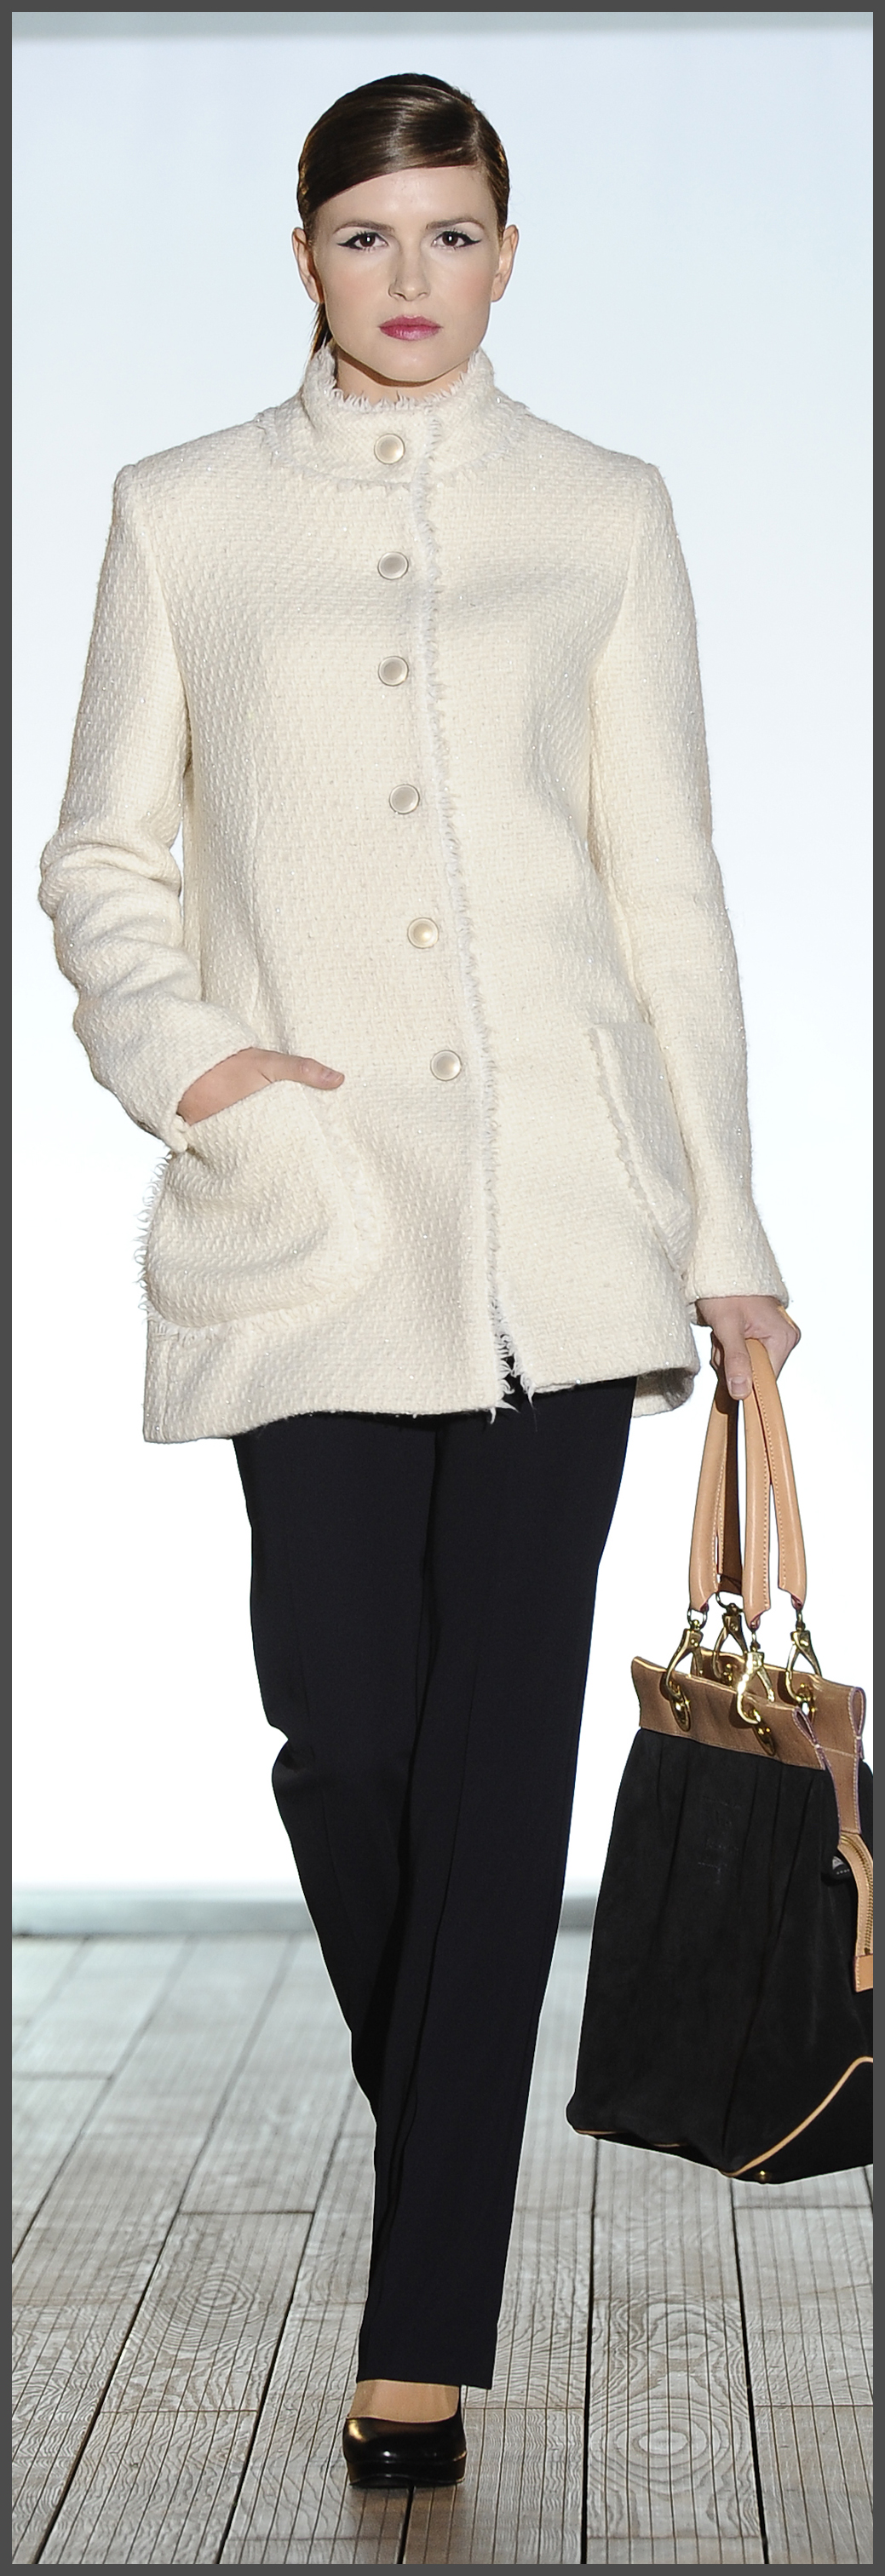 donnarosi-fall-winter-2012 (8).jpg